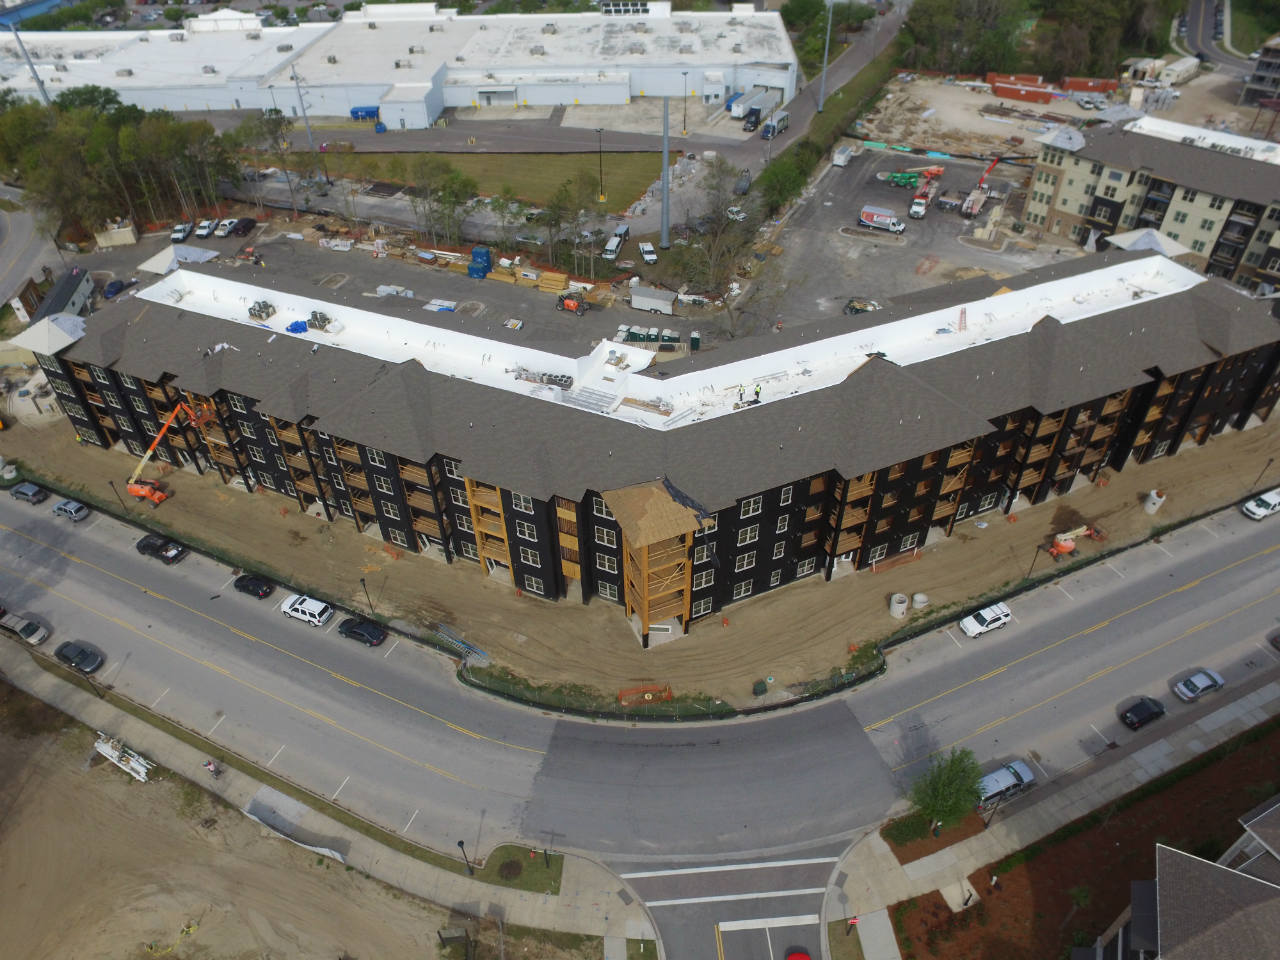 birds-eye view apartment buildings in construction